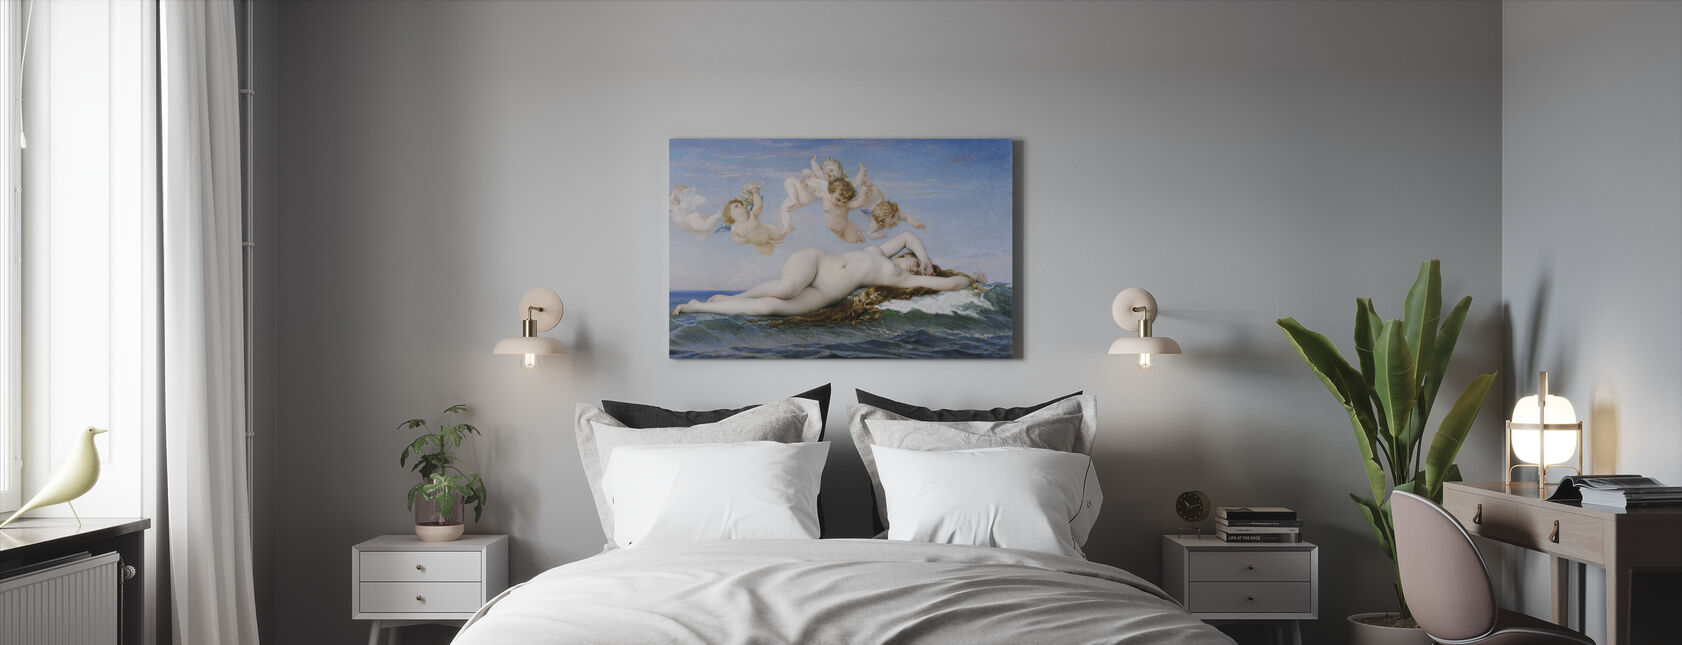 Birth of Venus, Alexandre Cabanel - Canvas print - Bedroom